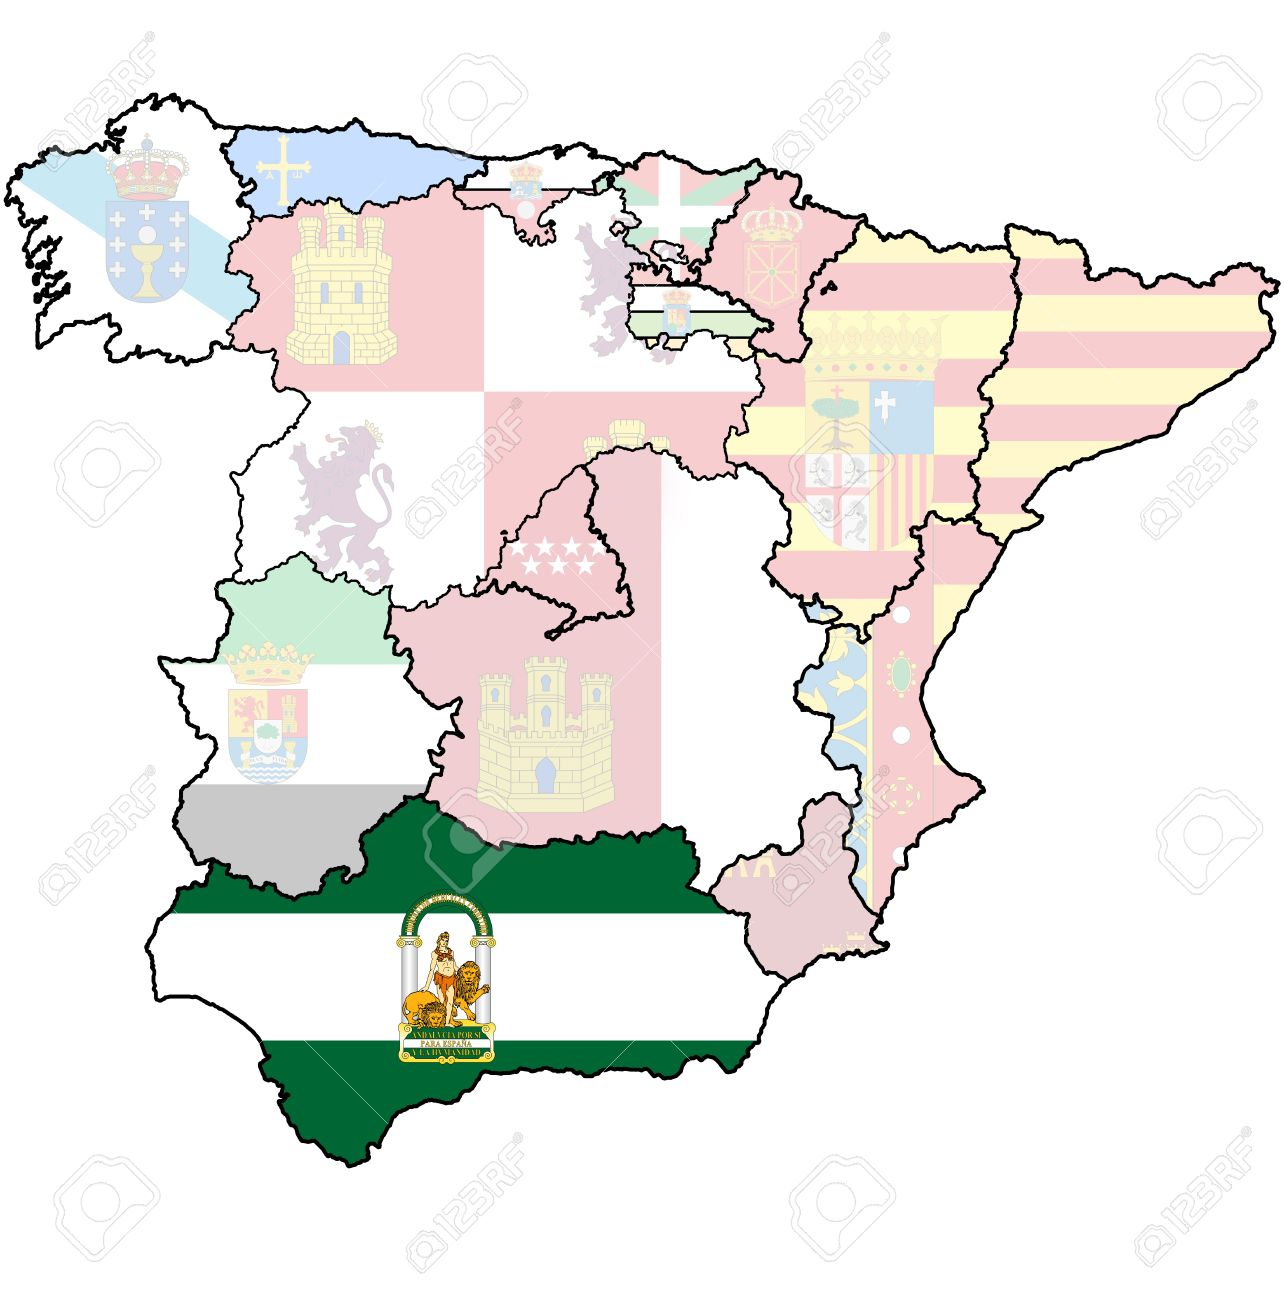 Andalucia On Map Of Spain.Andalucia Region On Administration Map Of Regions Of Spain With